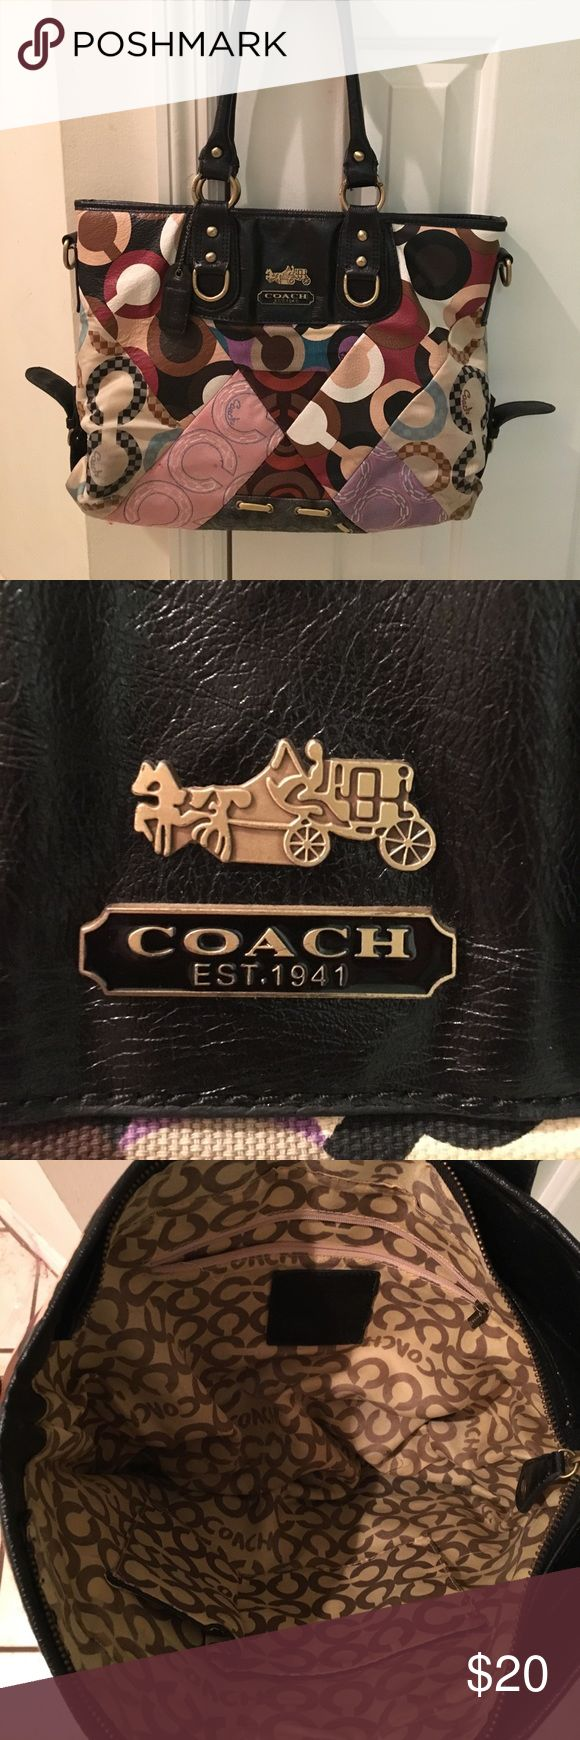 Coach Purse Patchwork style coach purse. Used condition. The handle straps are worn. Small spot on pink patch area. Inside very nice and clean. Coach Bags Totes